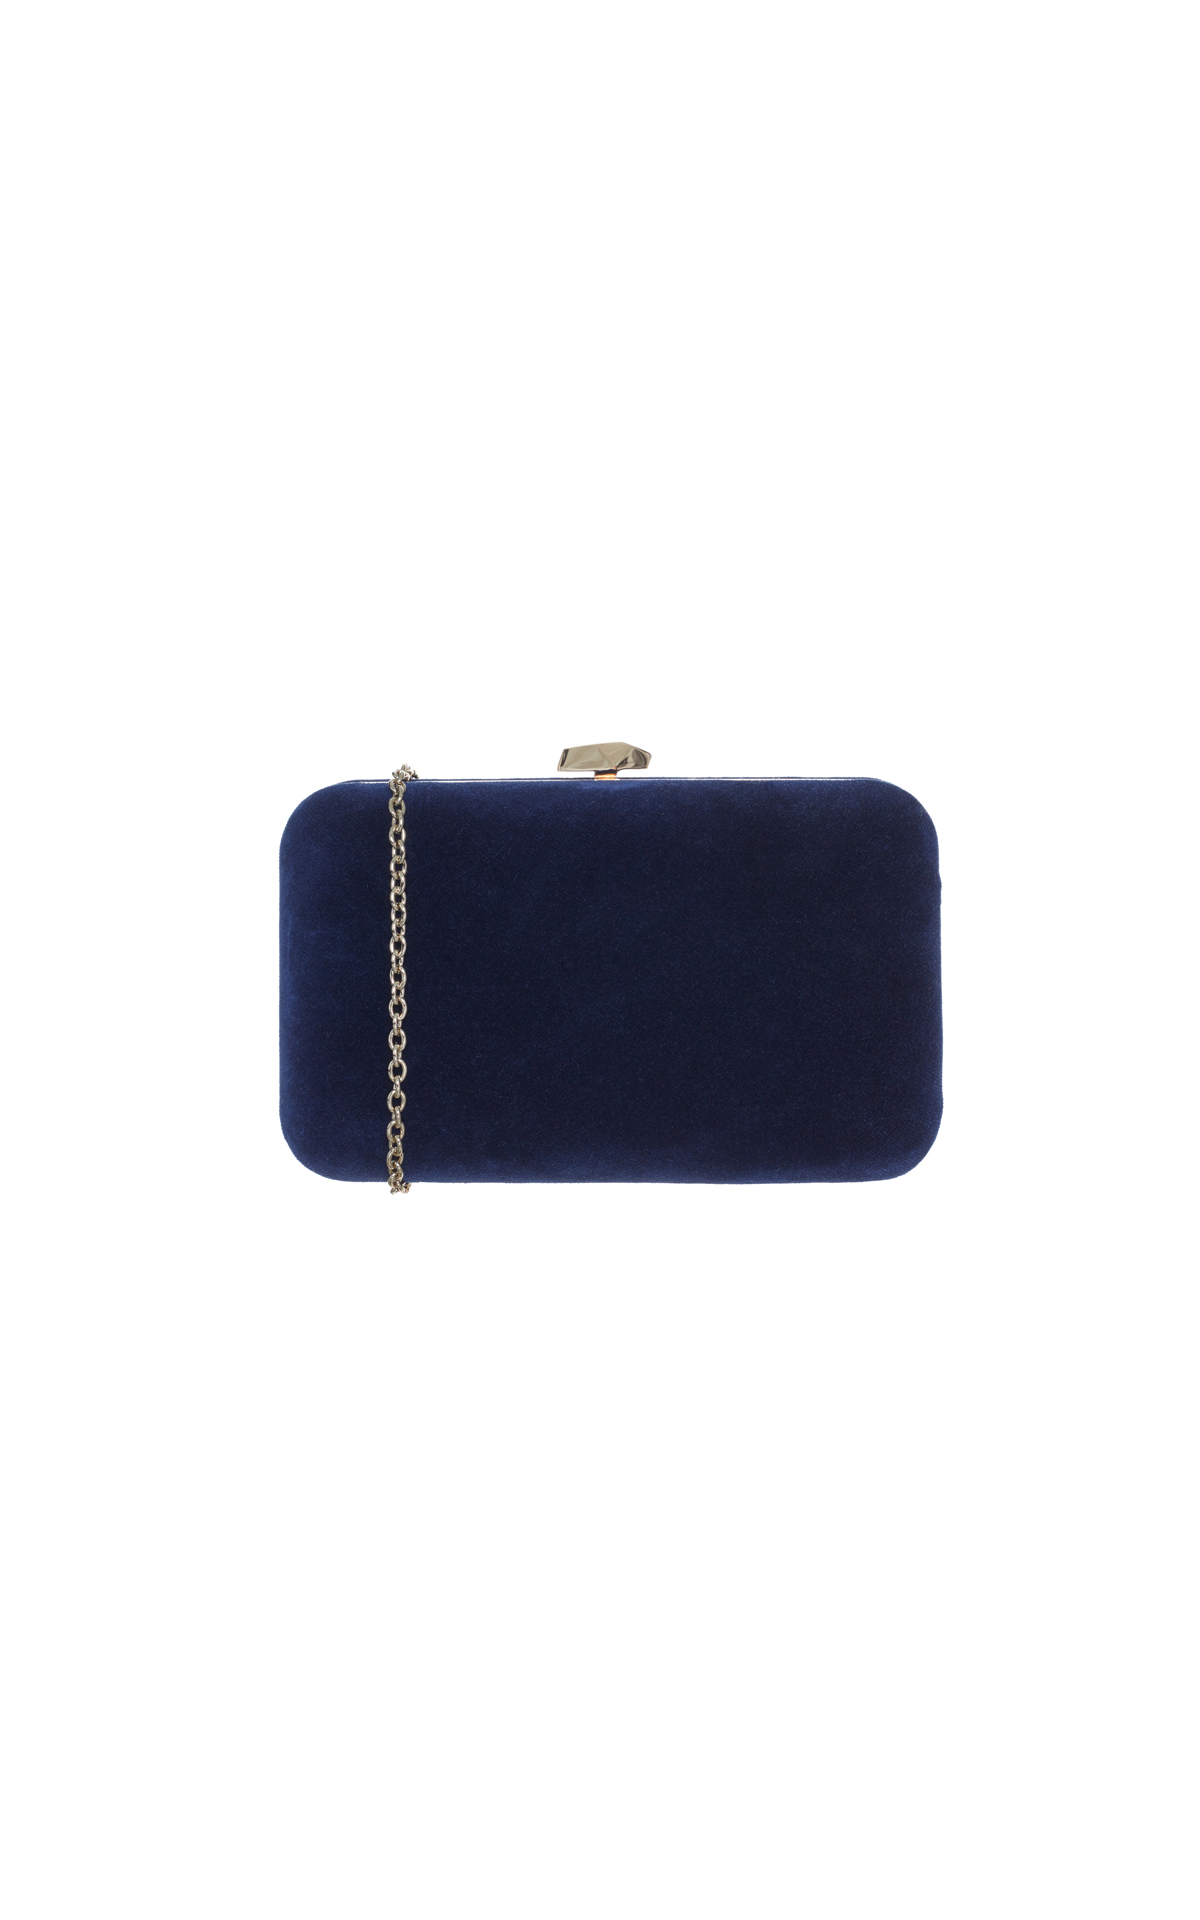 Coccinelle Velvet box clutch navy from Bicester Village